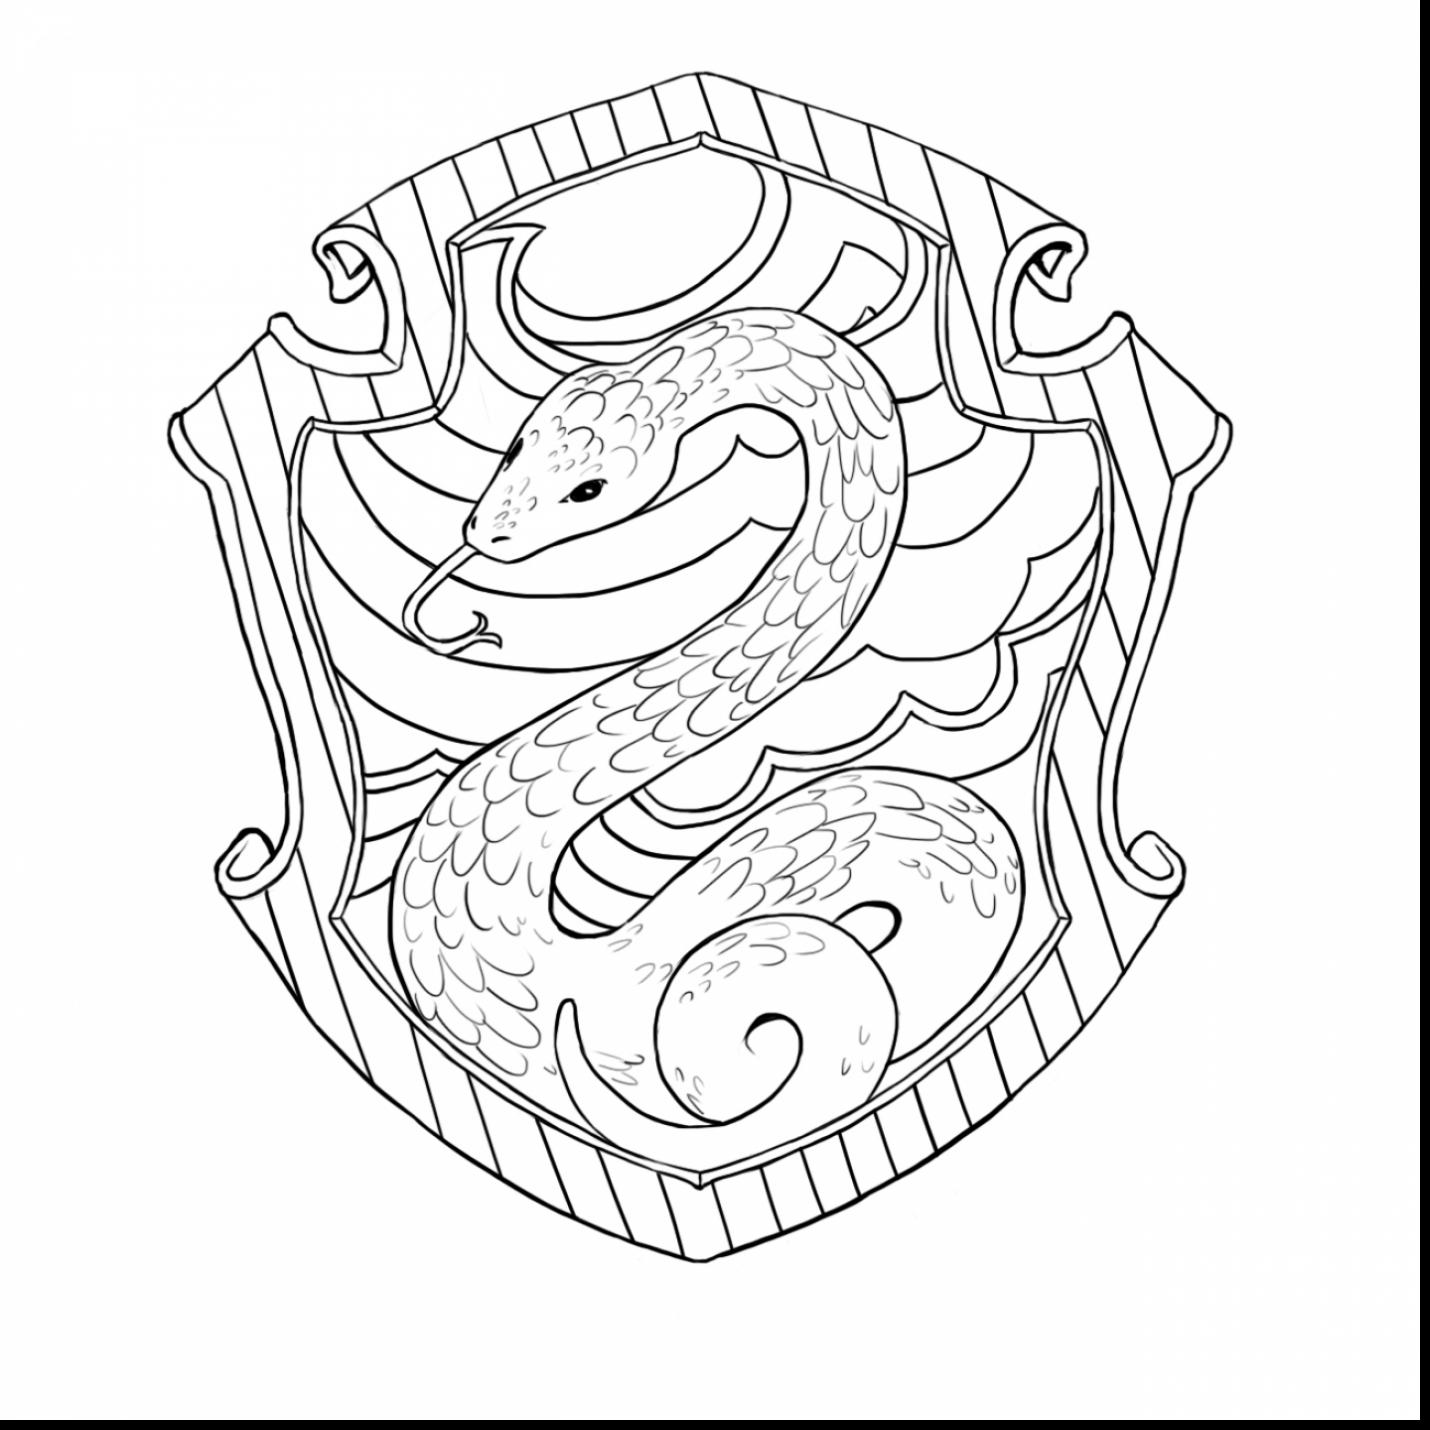 Coloring Pages Of Harry Potter Characters At Getcolorings